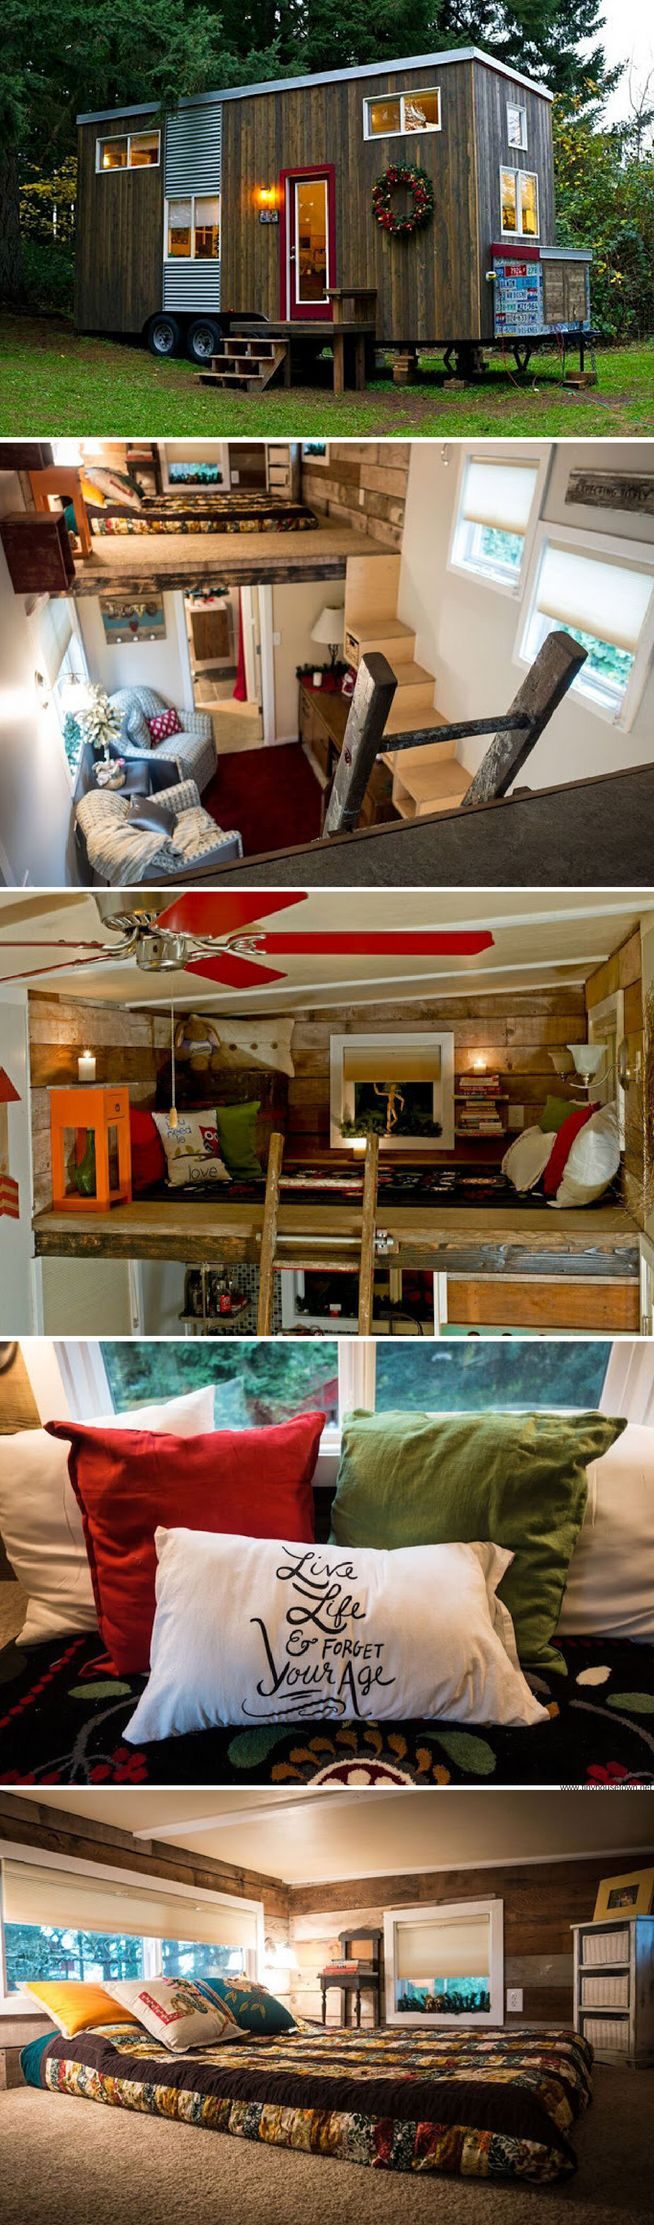 A 144 sq ft DIY tiny house in Oregon